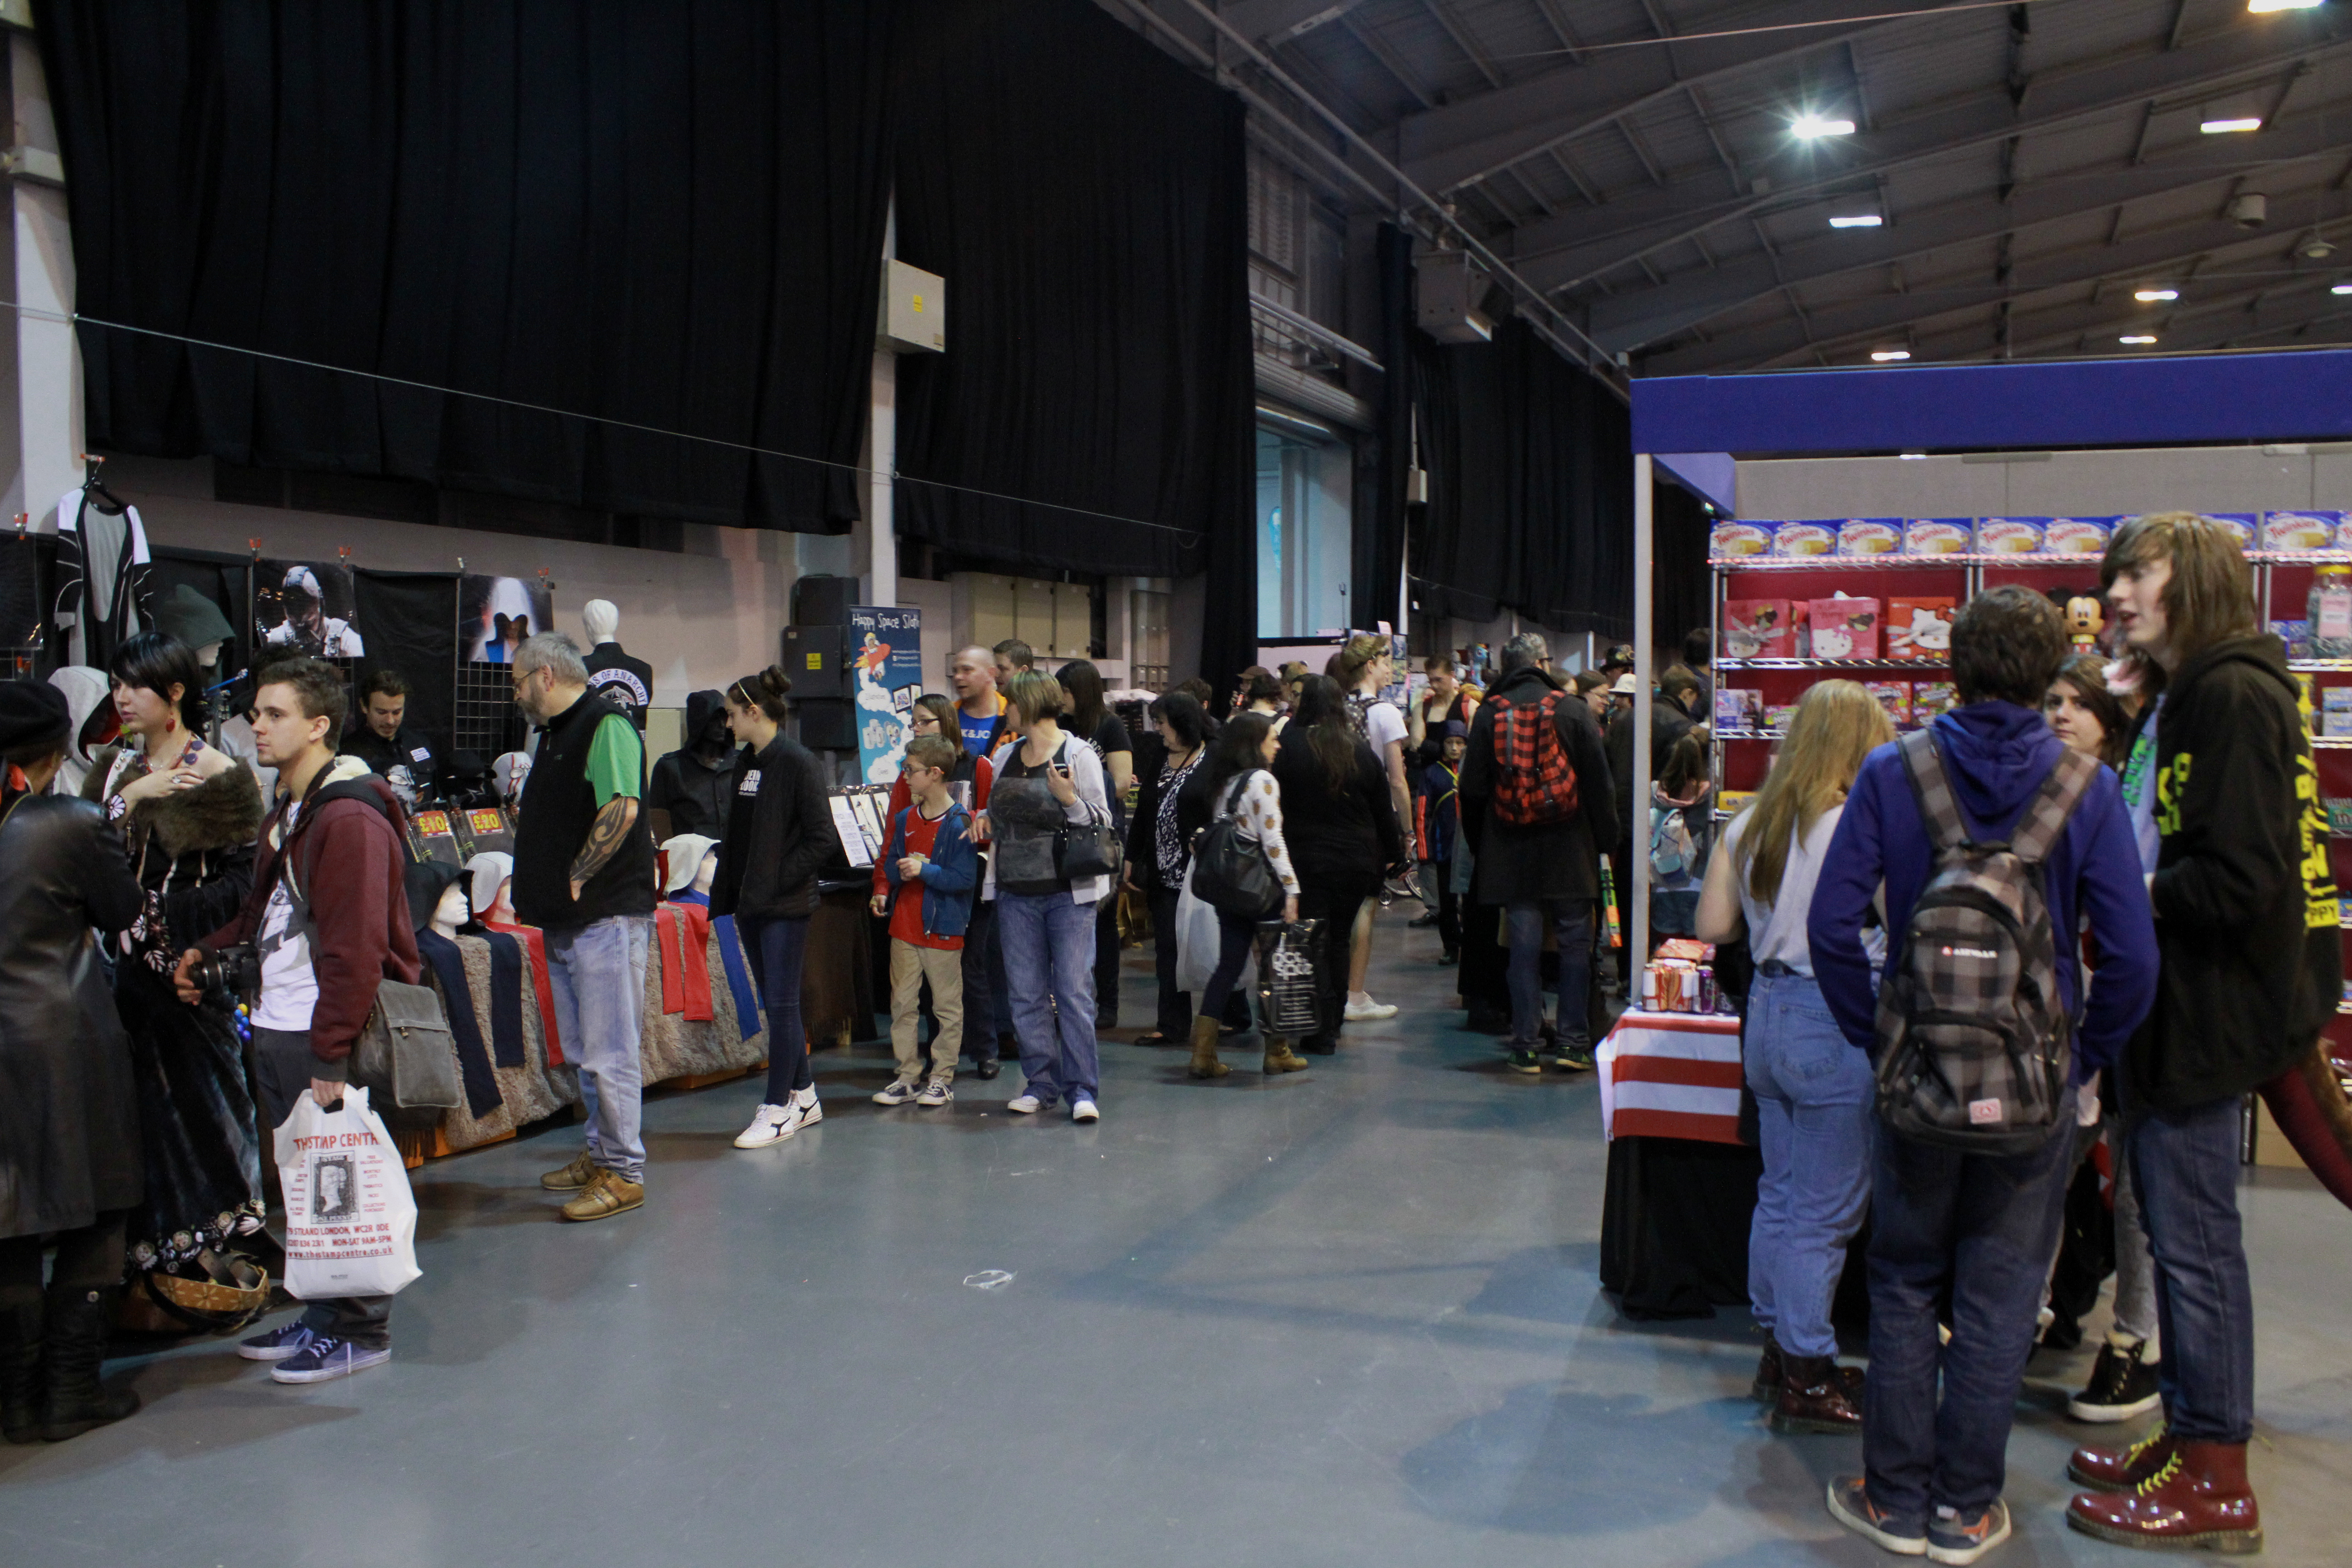 The crowd sticks to the stalls. MCM Midlands, Feb 2015